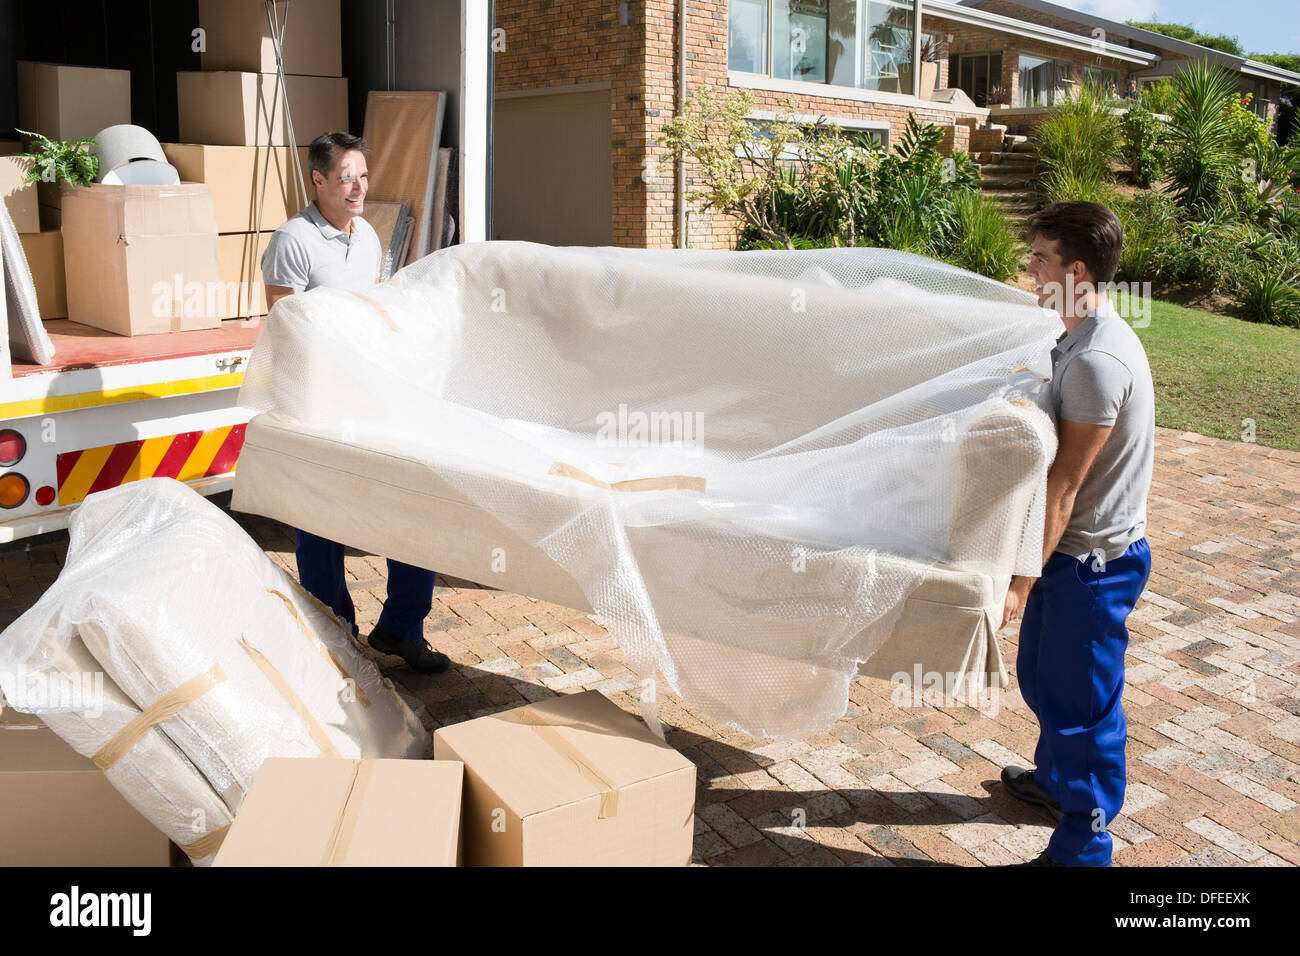 Movers carrying sofa from moving van in driveway - Stock Image